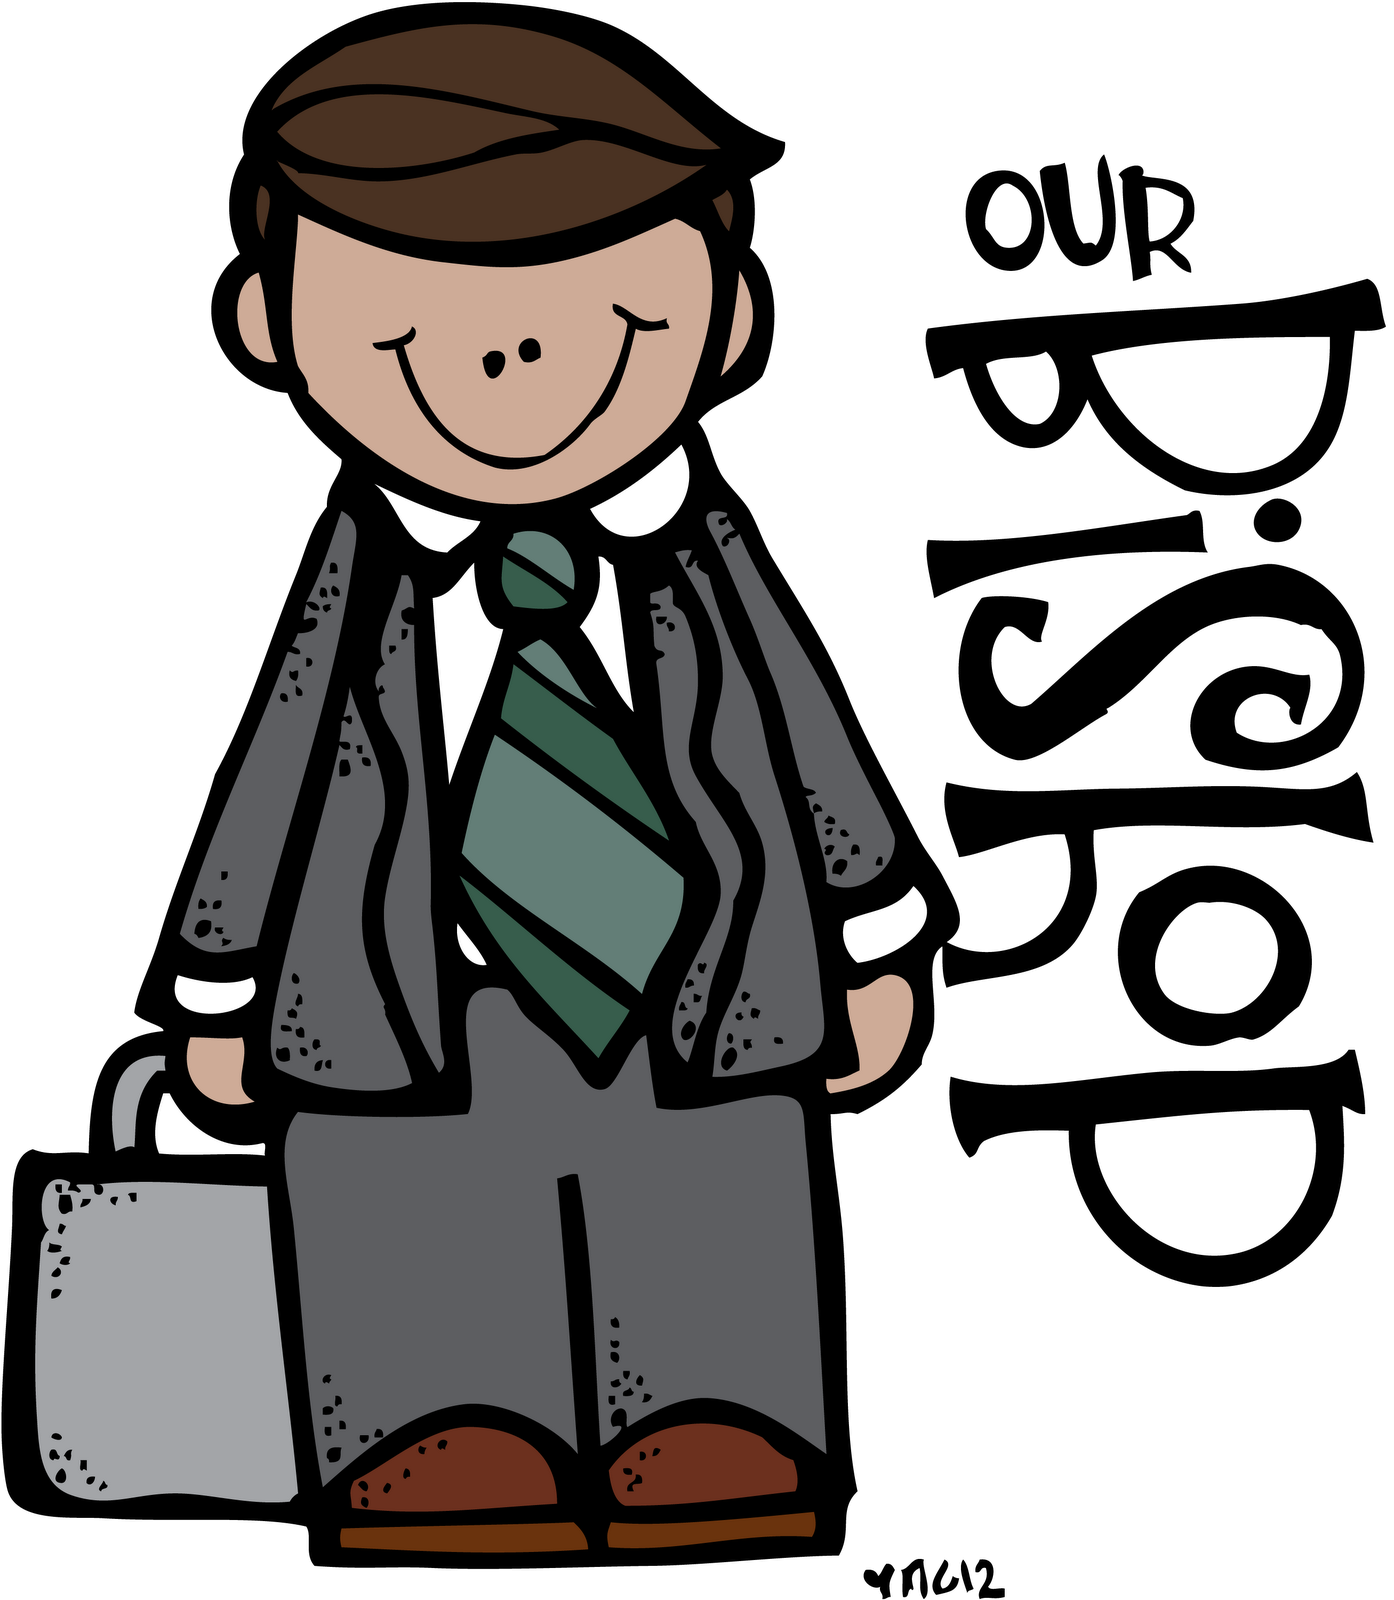 Lady clipart reporter. The barefoot chorister march